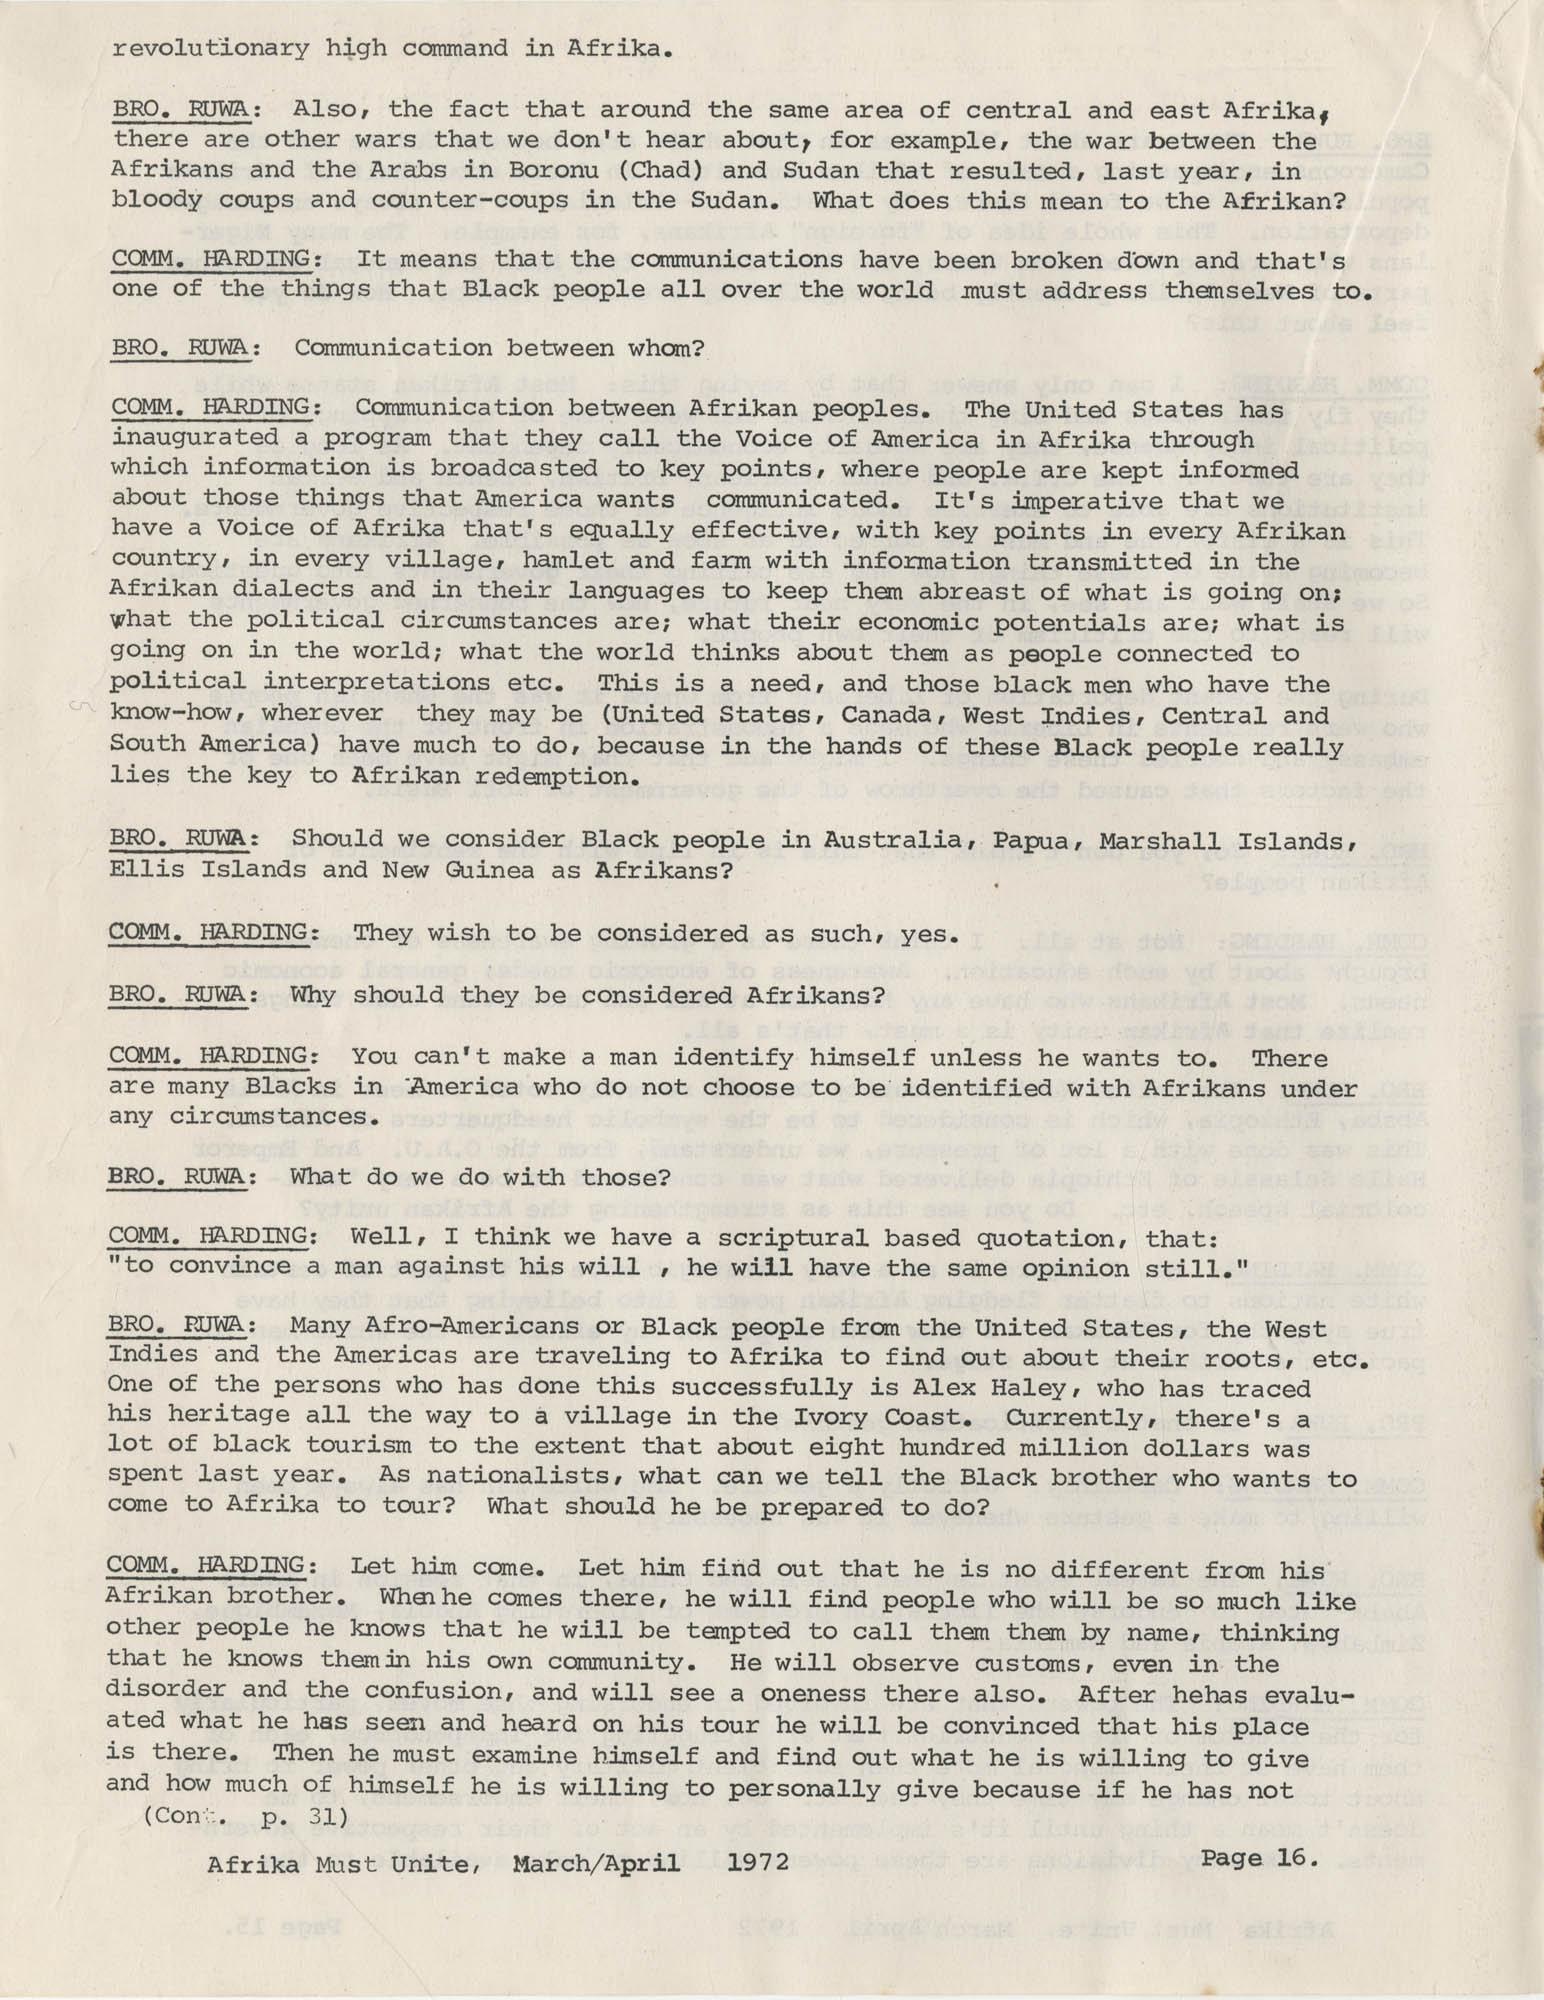 Afrika Must Unite, Vol. 1, No. 4, Page 16